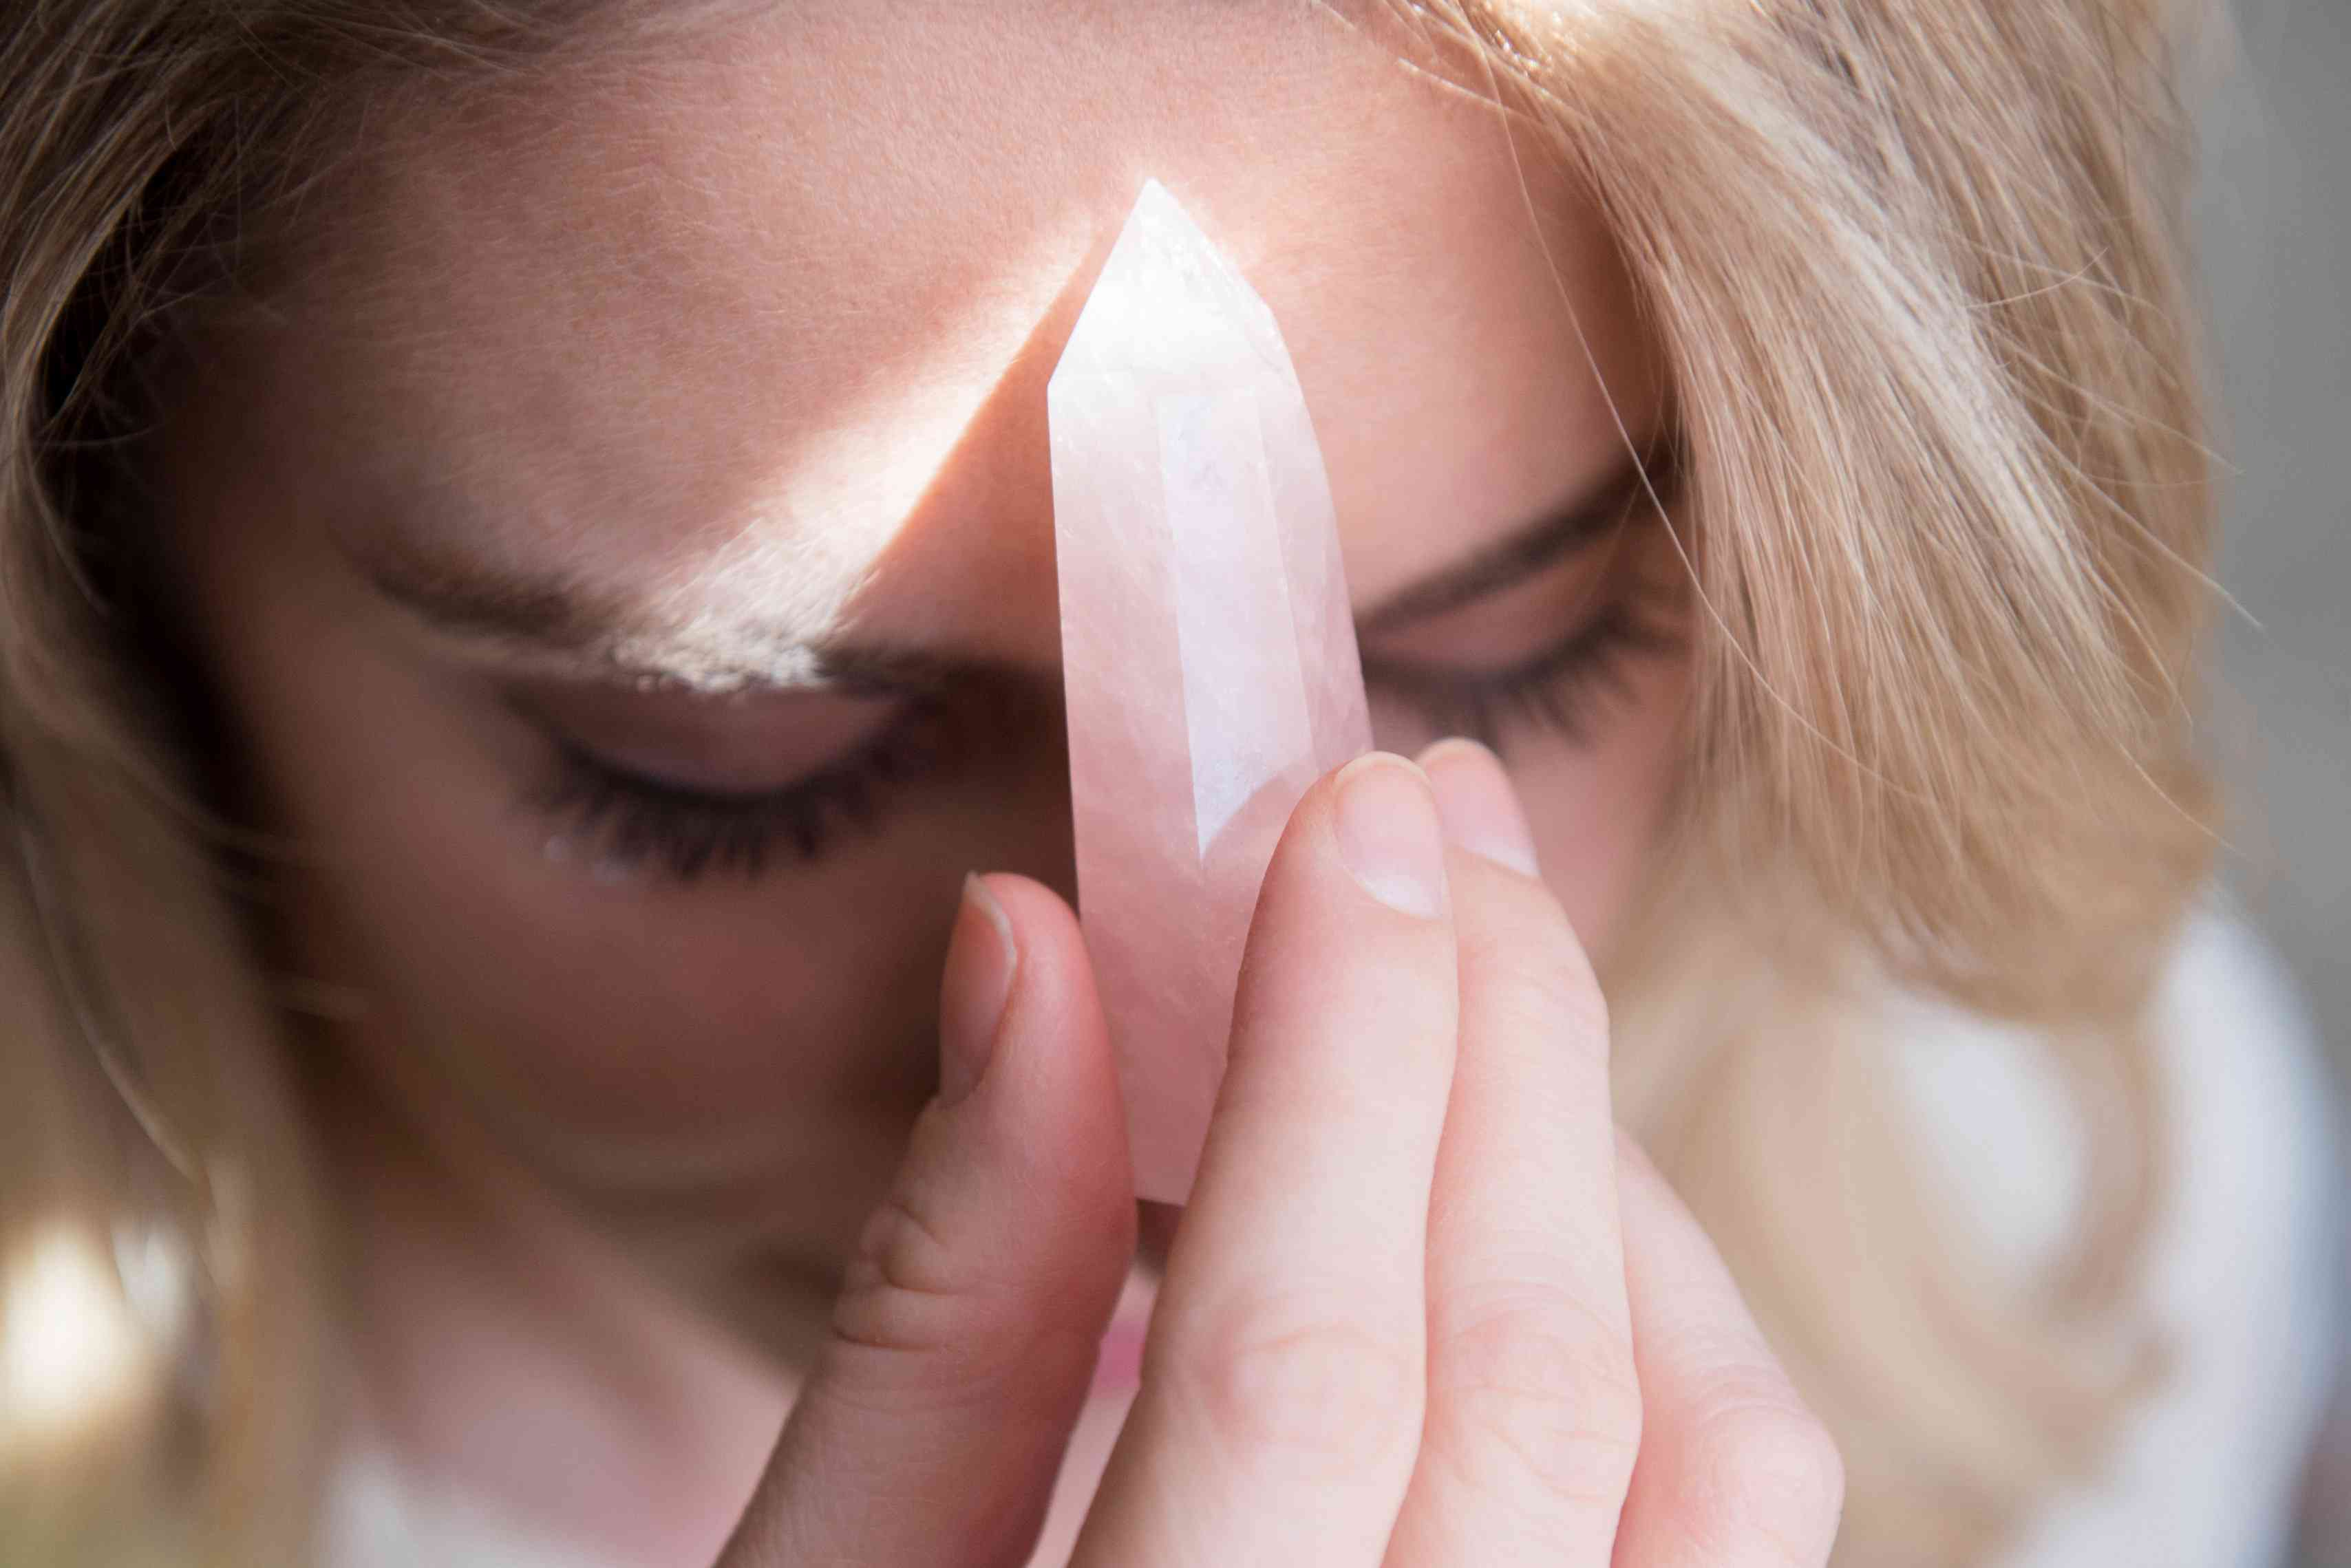 Rose quartz crystal point held to a woman's forehead